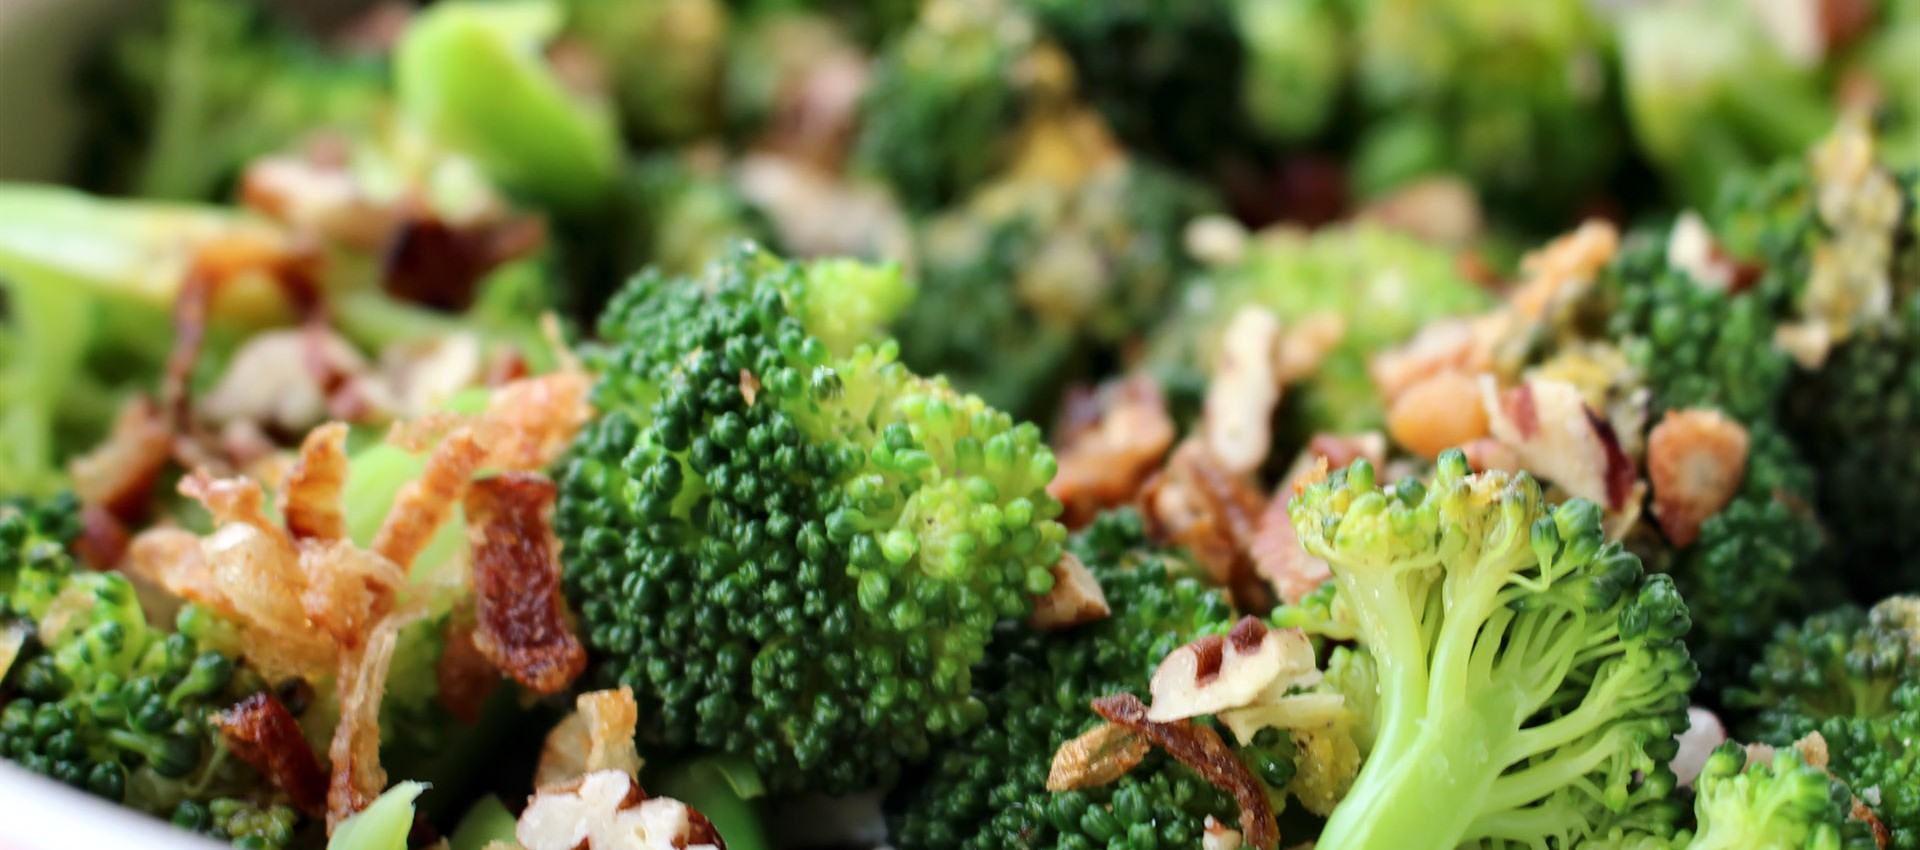 Warm Broccoli with Caramelized Shallots in a Lemon Garlic Dressing ...